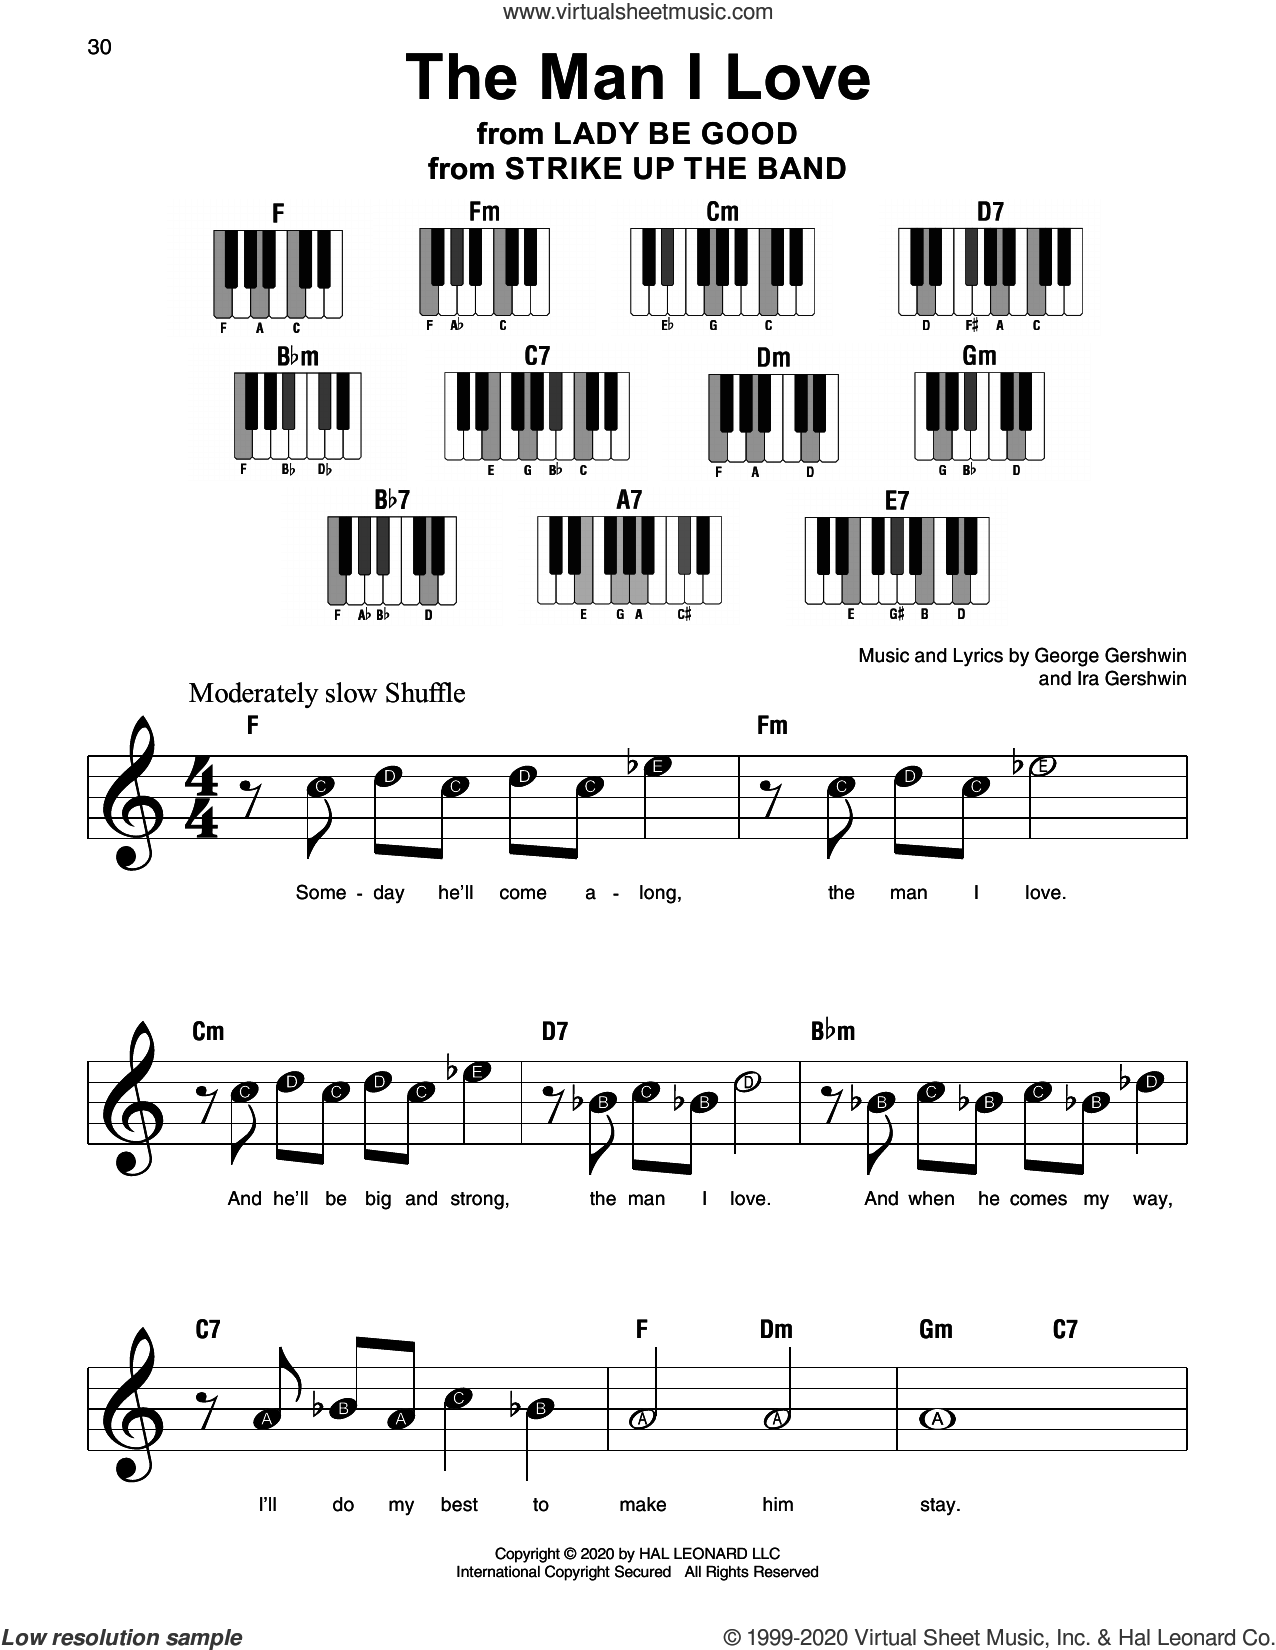 The Man I Love (from Strike Up The Band) sheet music for piano solo by George Gershwin, George Gershwin & Ira Gershwin and Ira Gershwin, beginner skill level